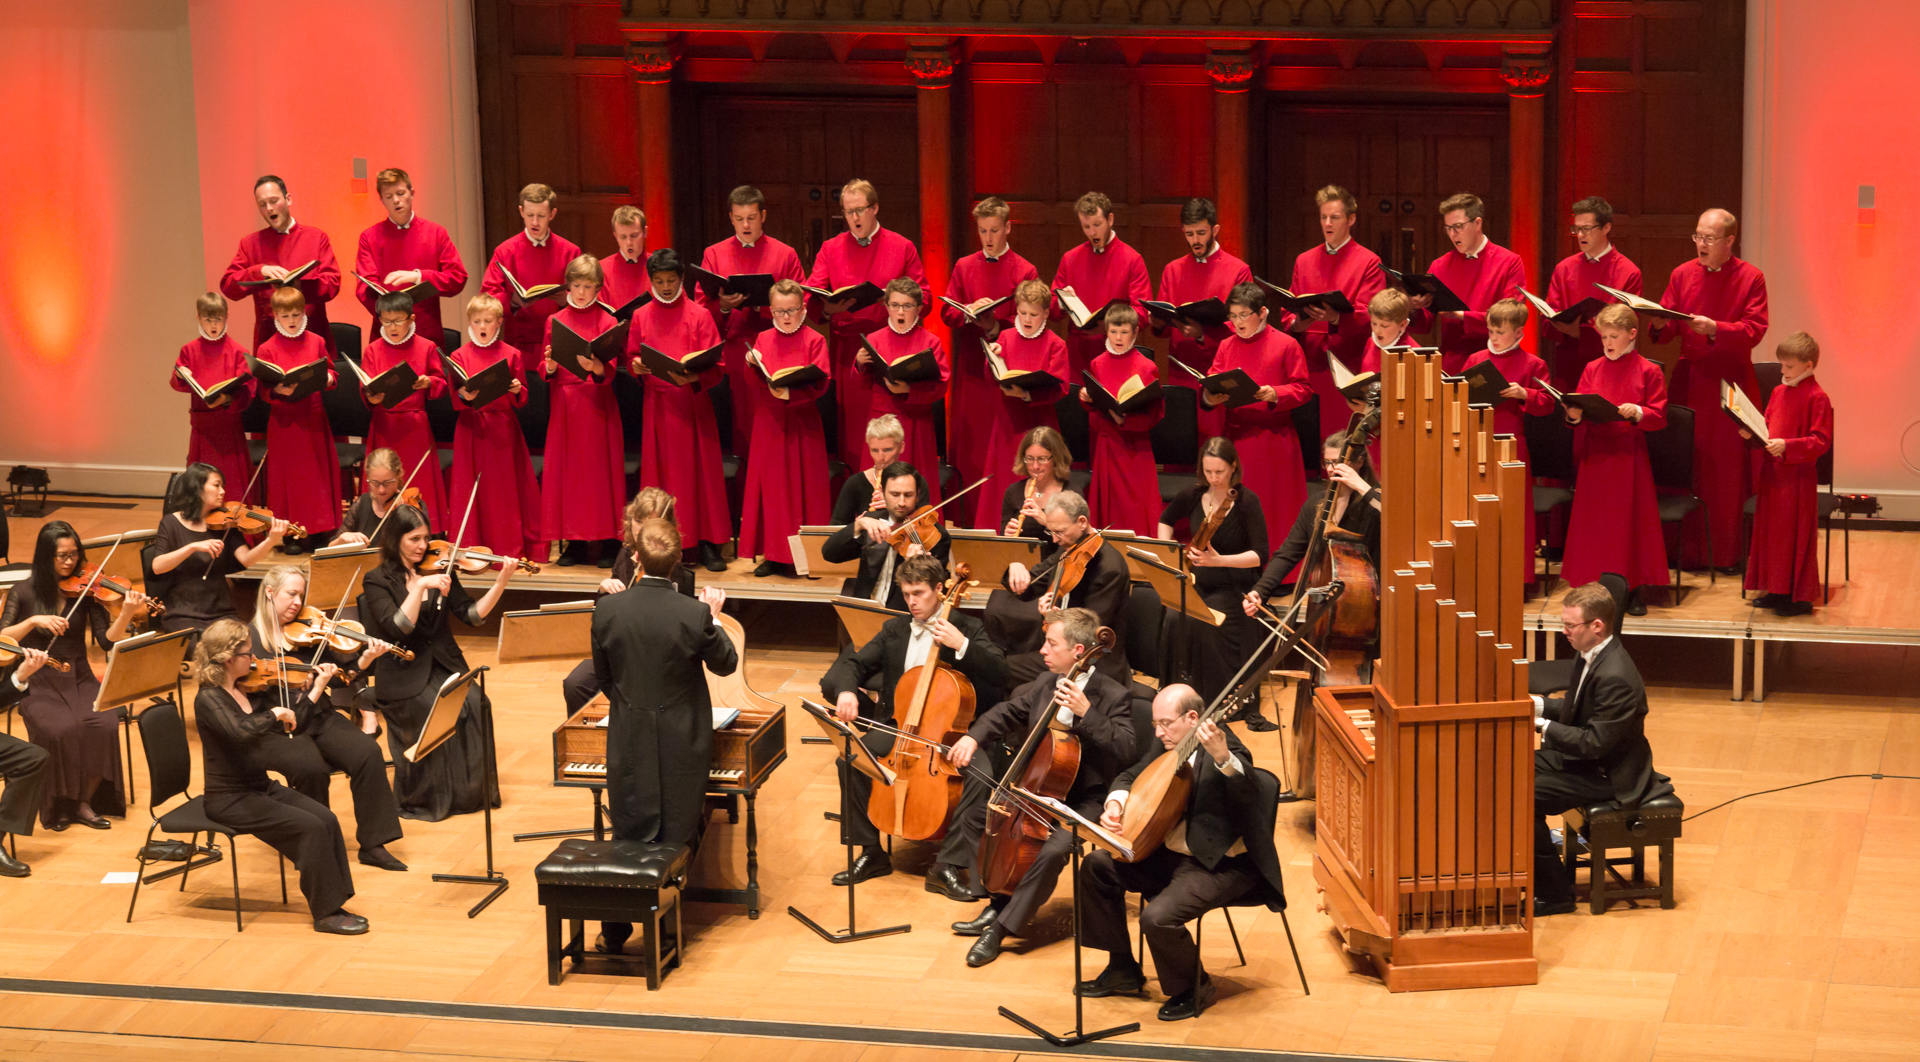 The choir in concert at Cadogan Hall